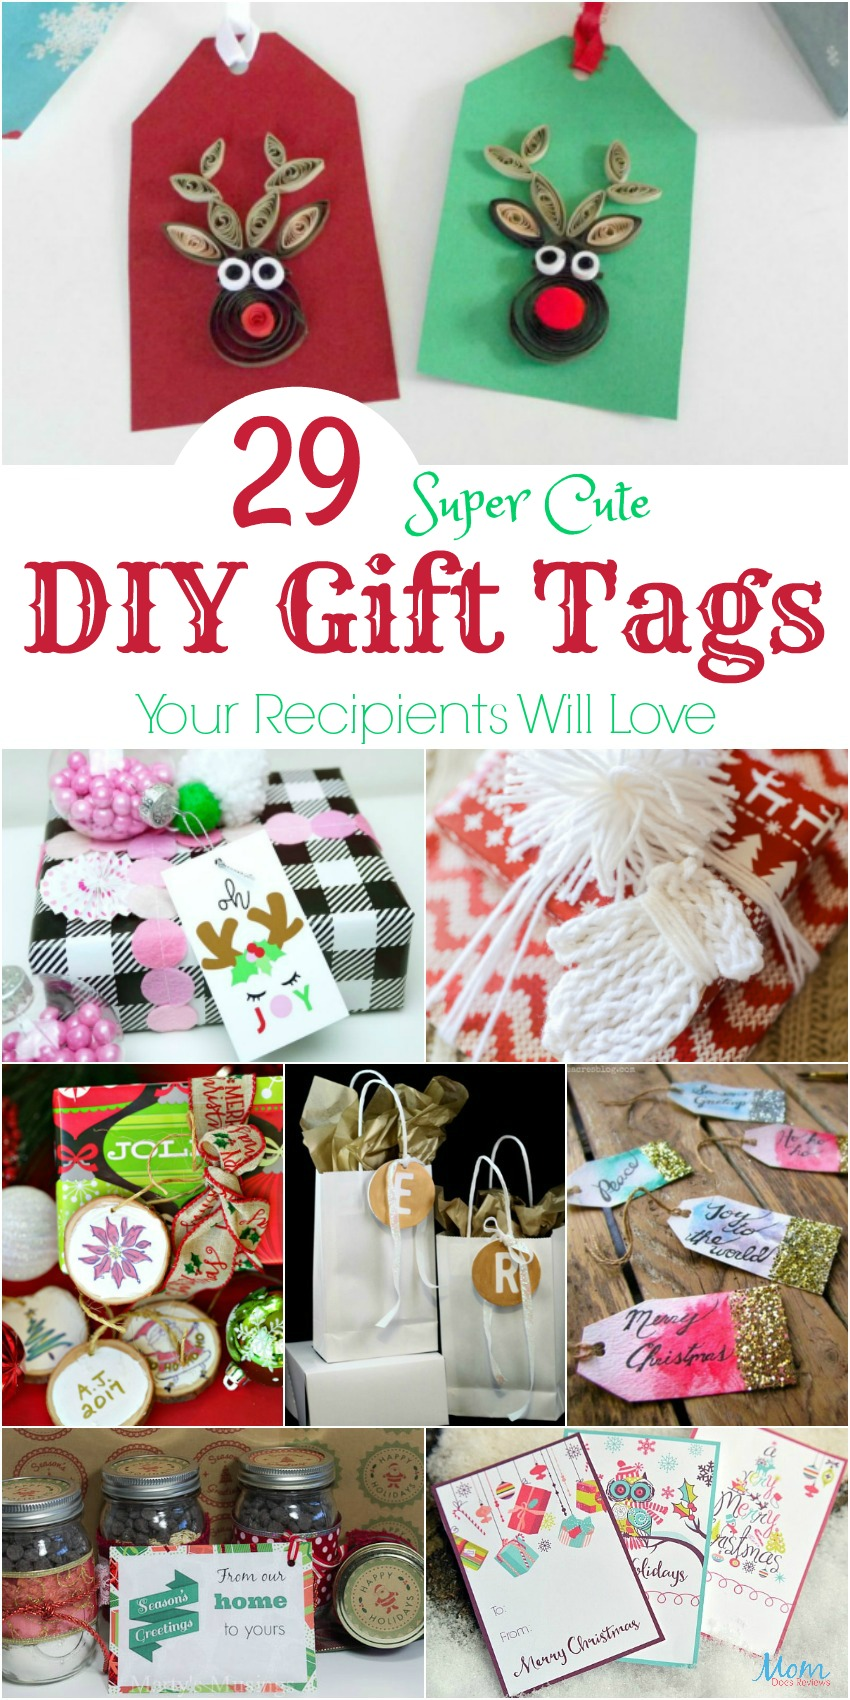 29 Super Cute DIY Gift Tags Your Recipients Will Love #DIY #Gifts #Christmas #crafts